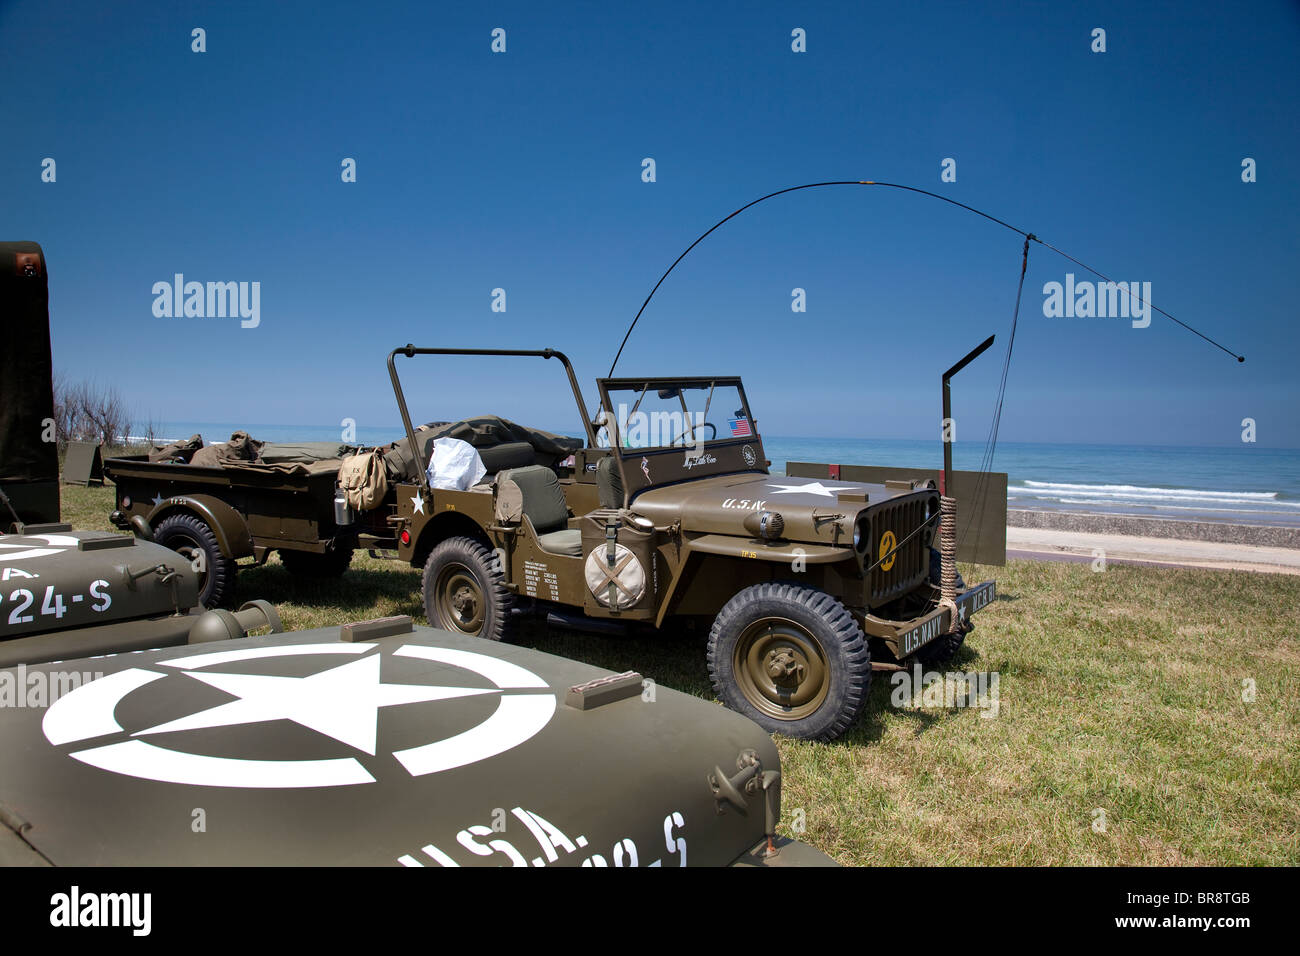 US Army D day re-enactment camp at Omaha Beach Normandy France - Stock Image